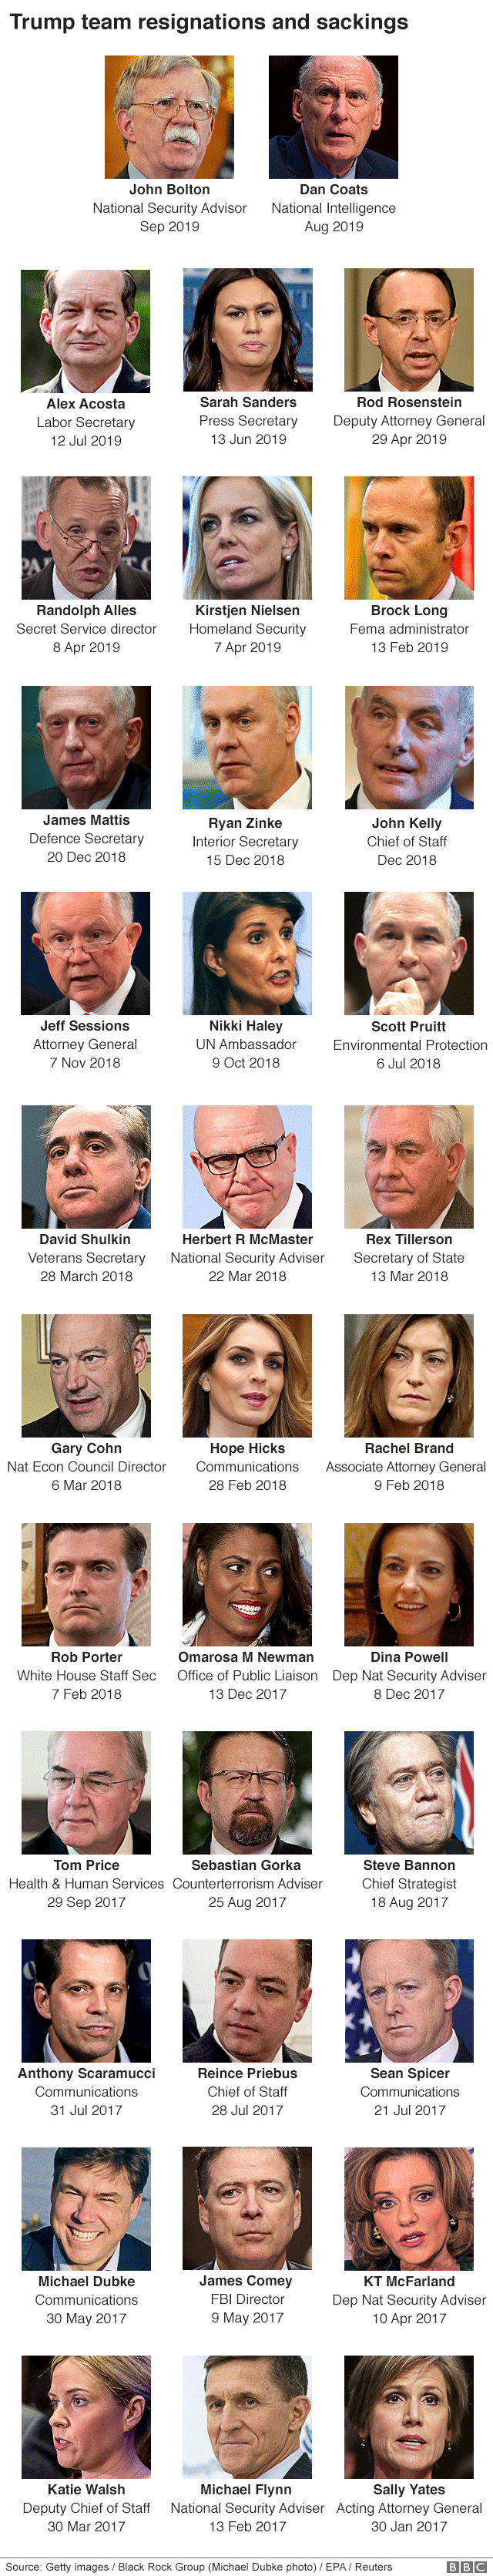 The White House revolving door: Who's gone? - BBC News